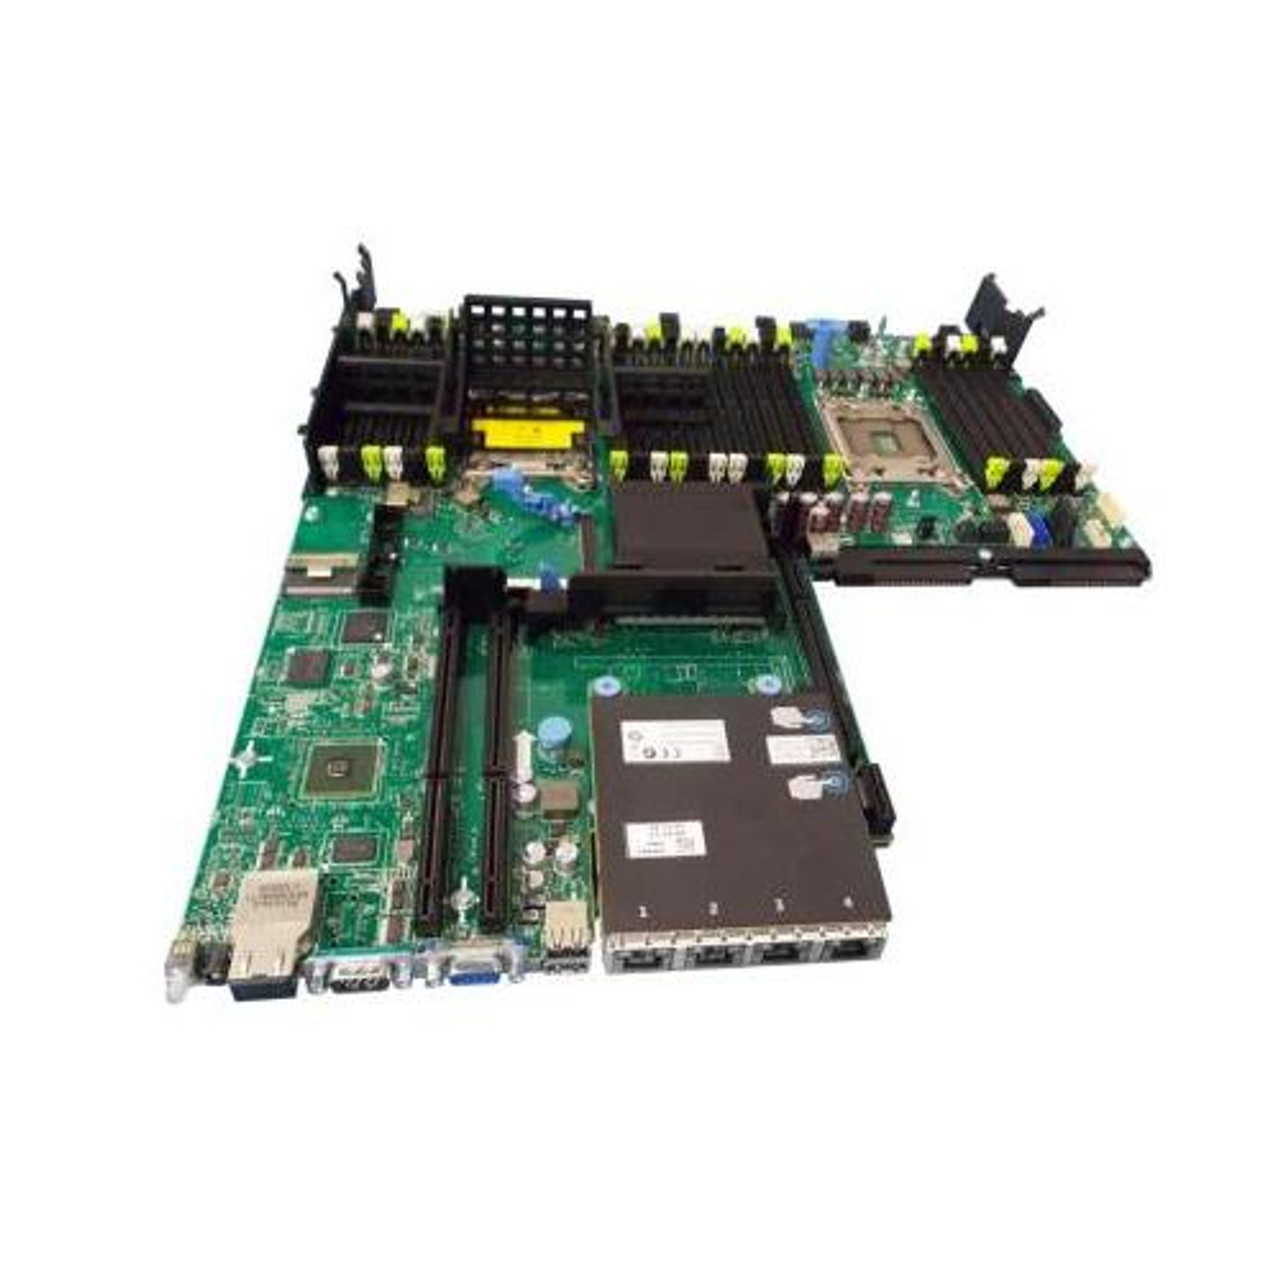 DELL POWEREDGE R620 SERVER MOTHERBOARD SYSTEM BOARD 1W23F